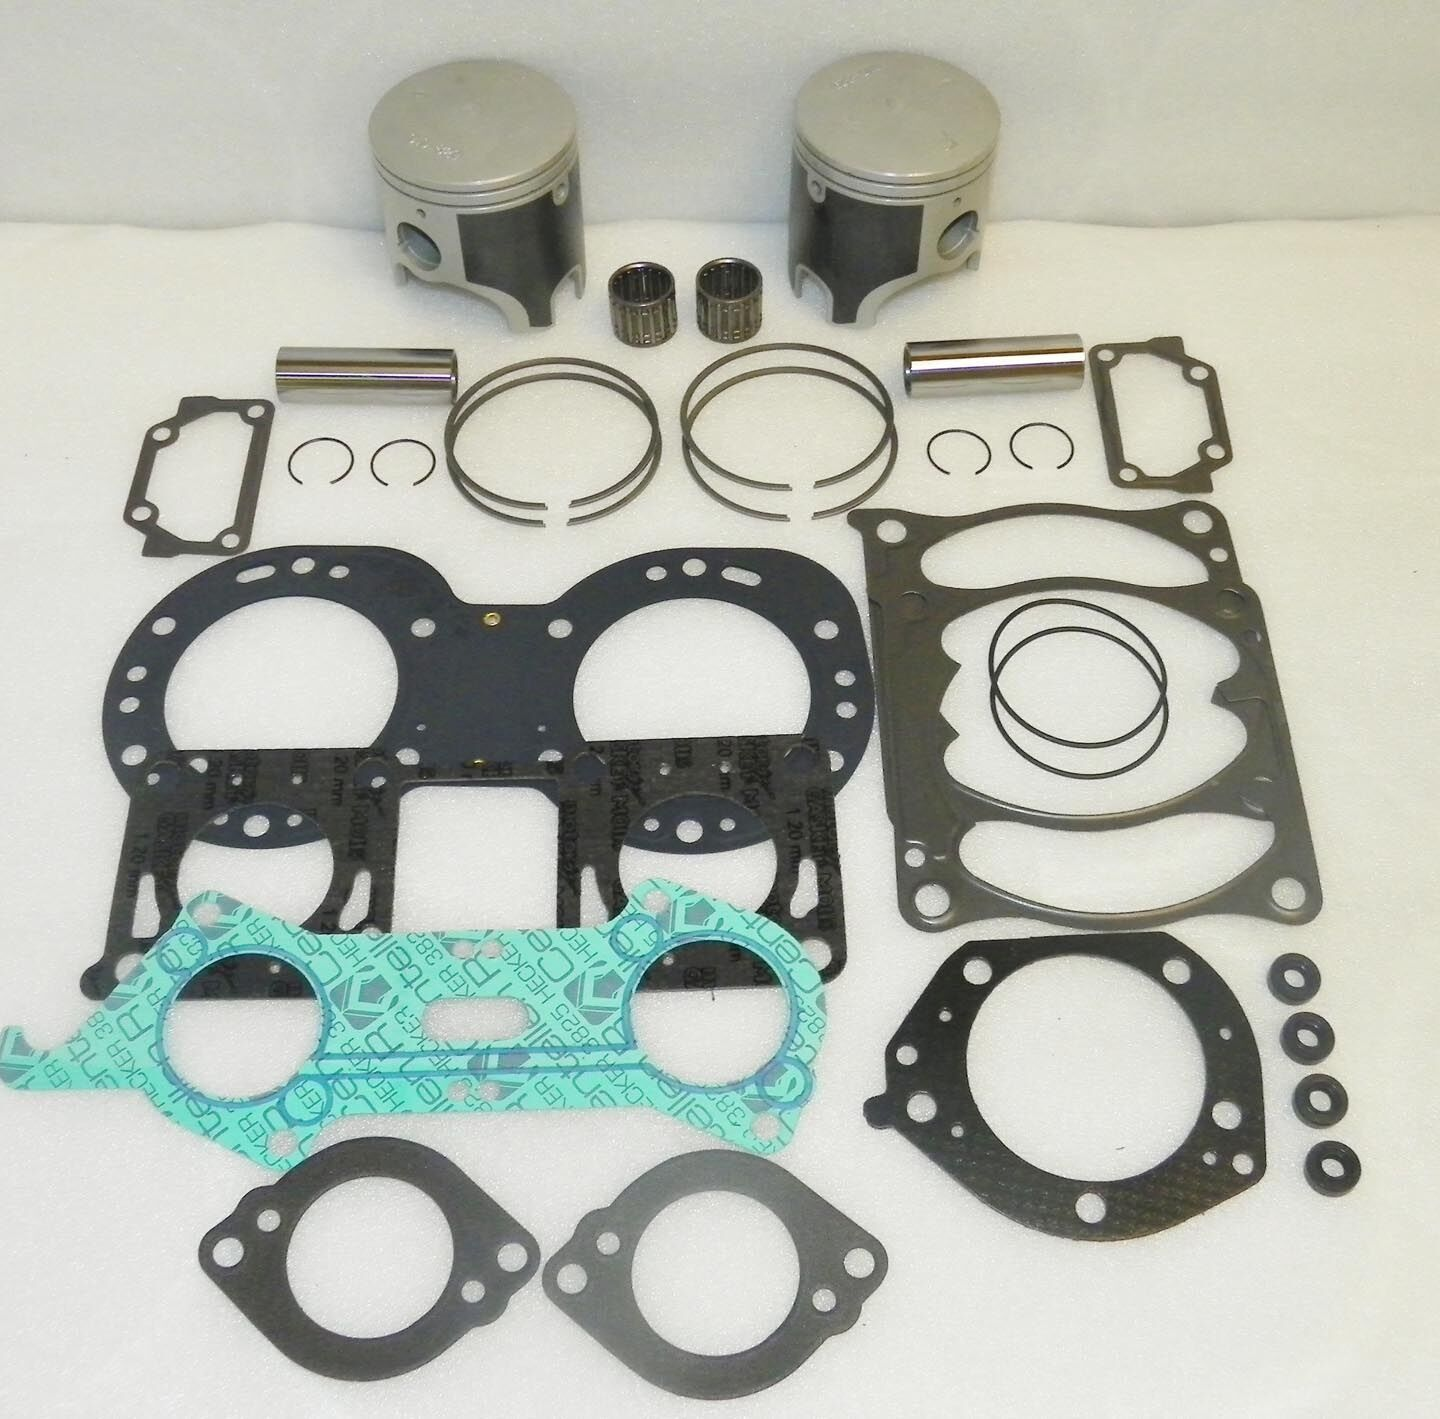 Top End Rebuild Set 800 1.0 Yamaha 800 Set GP800 XLT800 Wsm Platinum 010-828-14P 18dc38